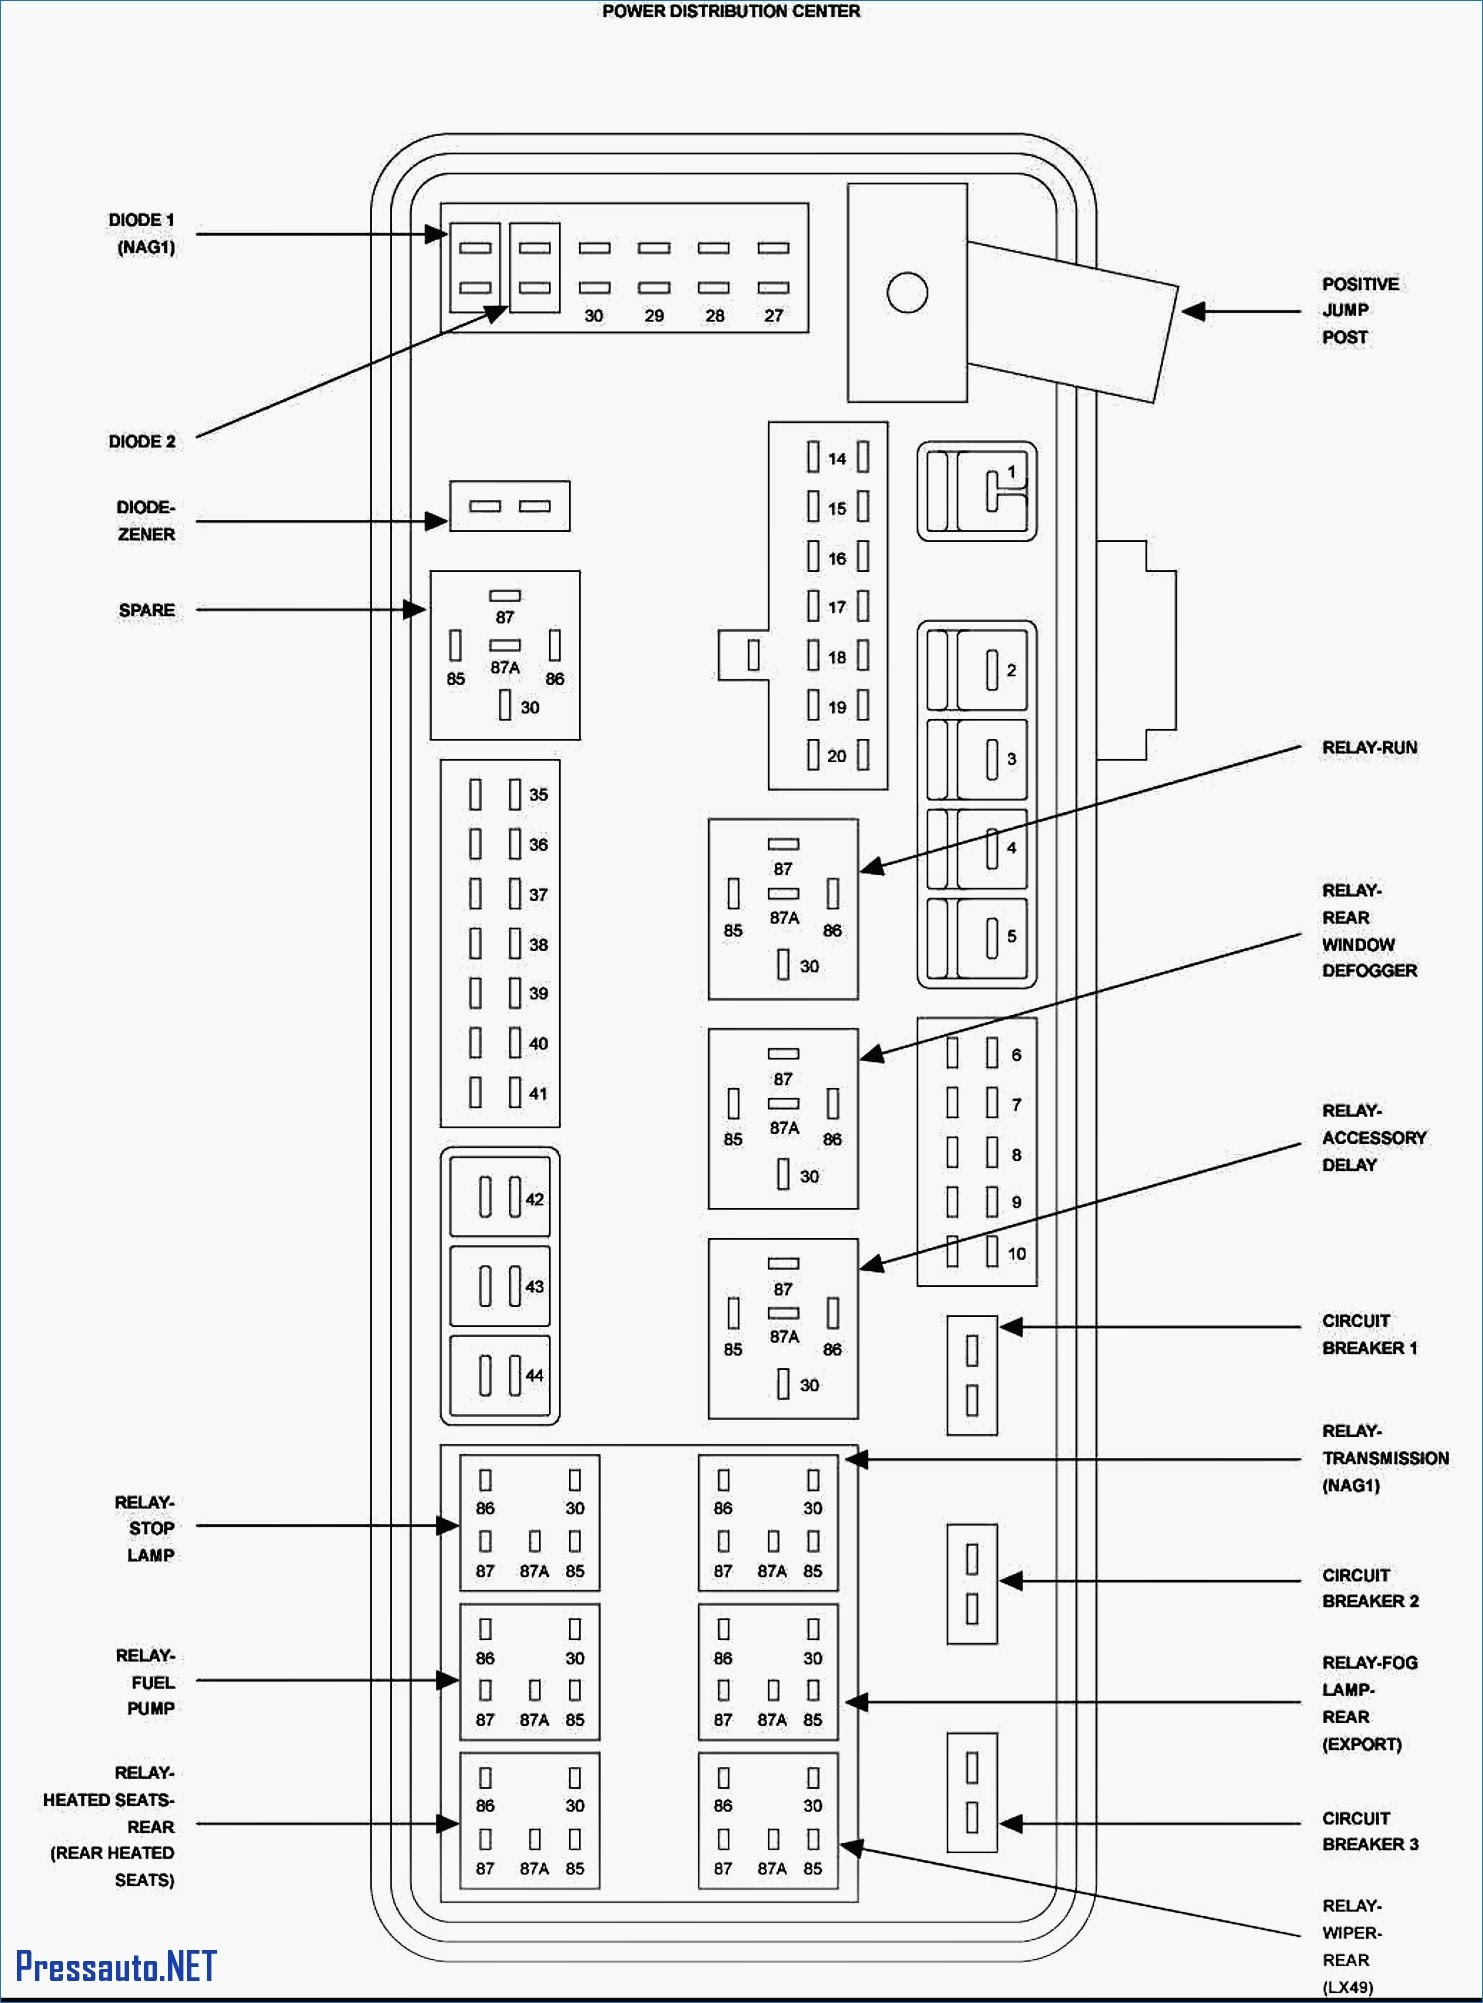 2000 chrysler 300 fuse box - wiring diagram shop-ware -  shop-ware.cinemamanzonicasarano.it  cinemamanzonicasarano.it